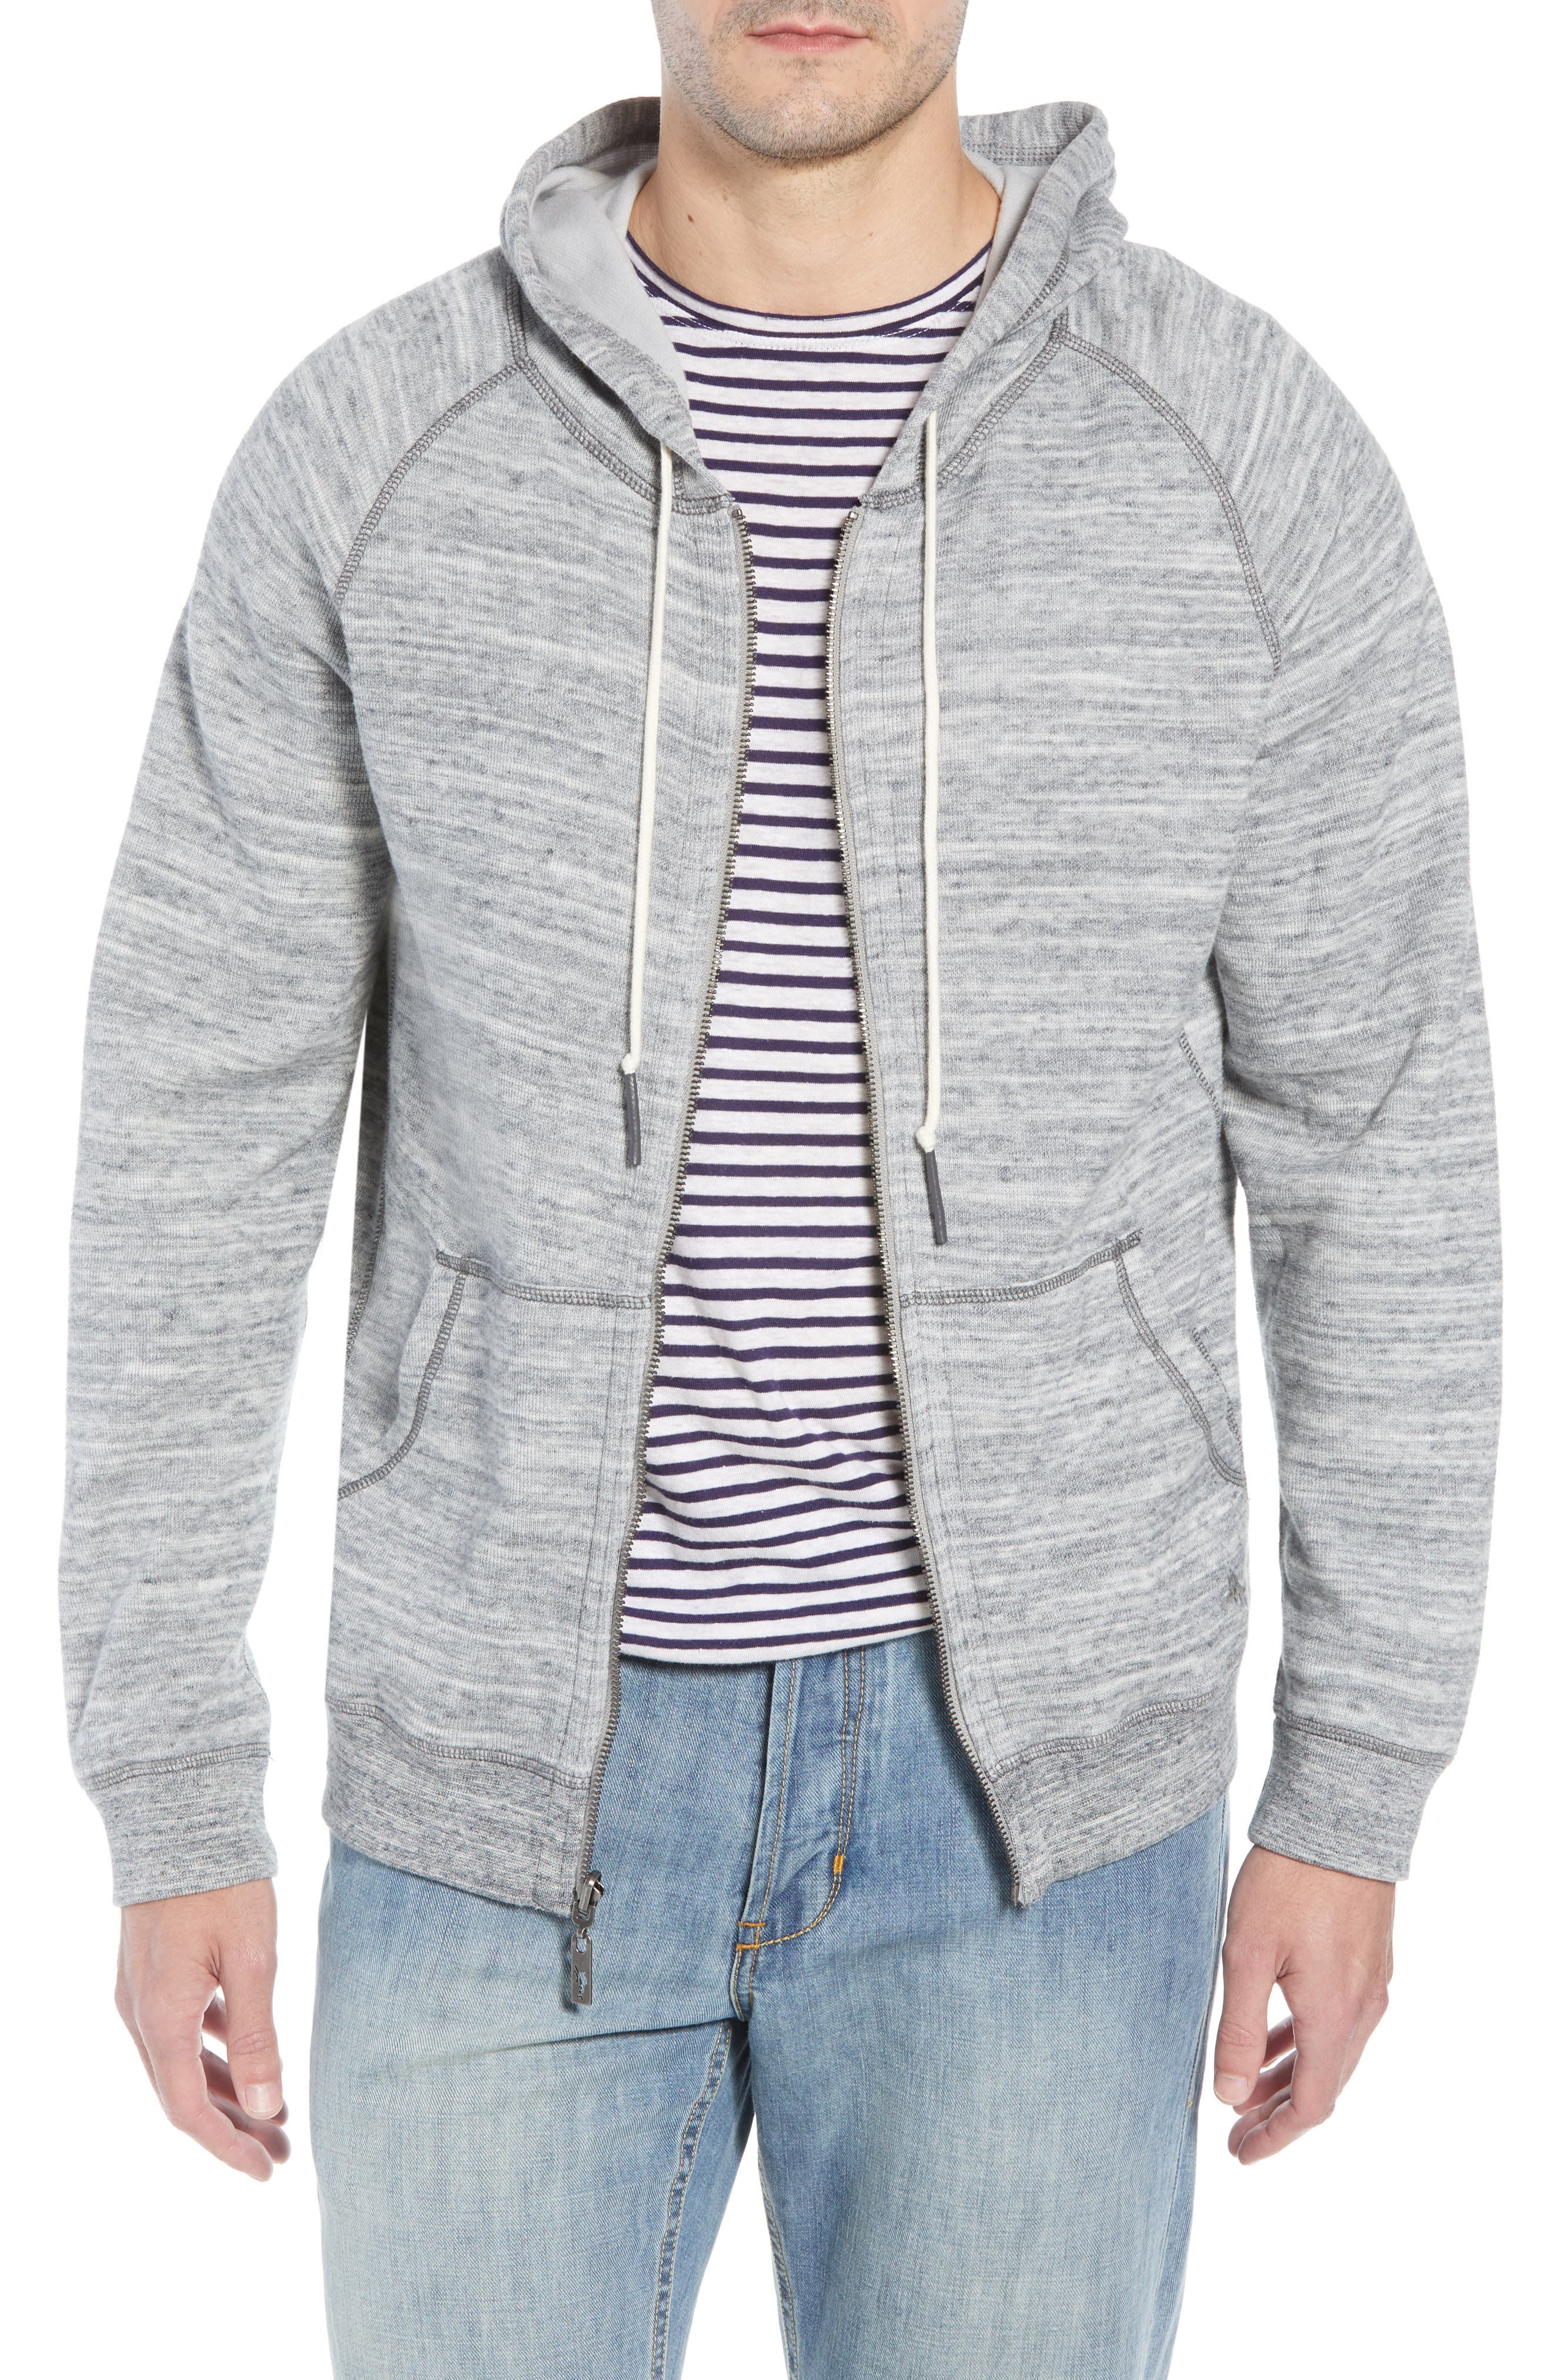 TOMMY BAHAMA, Flip Reversible Zip Hoodie, Main thumbnail 1, color, GREY HEATHER